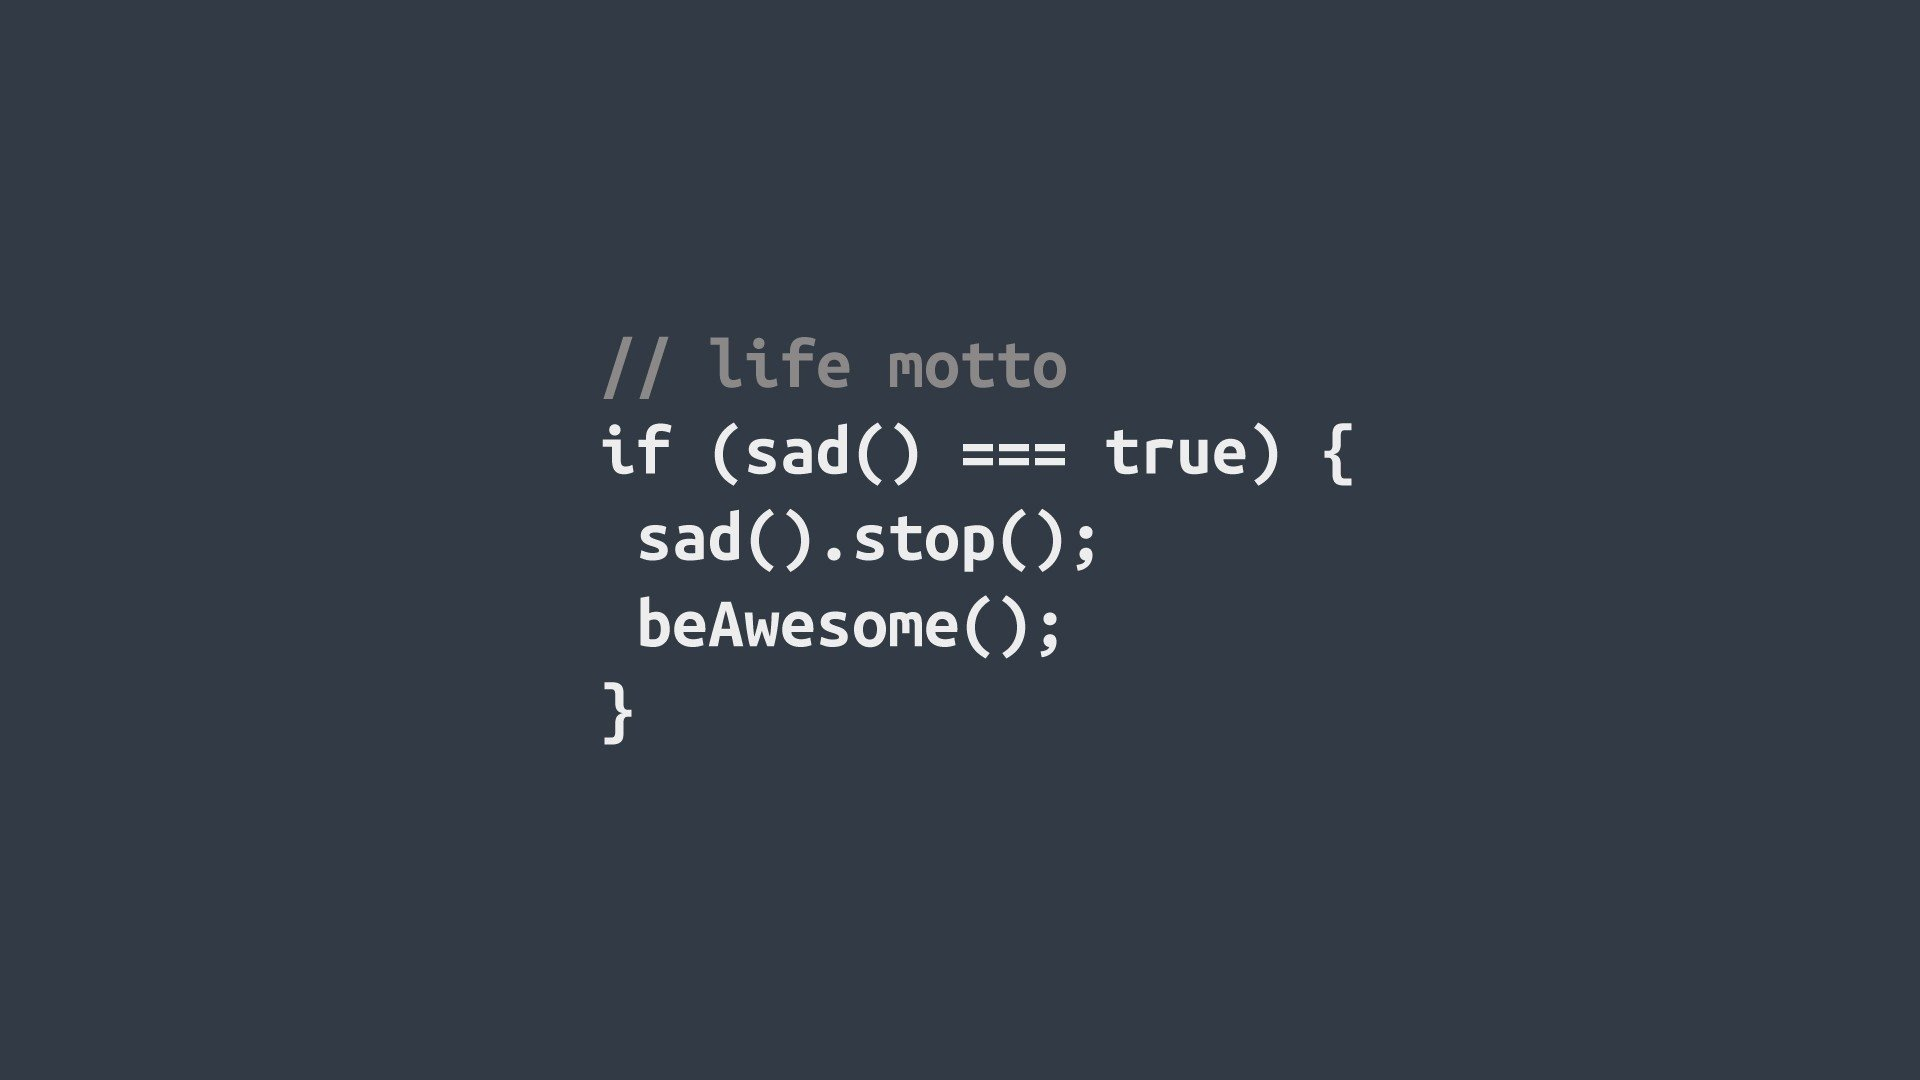 1000 Images About Programming Quotes On Pinterest: If Sad, Be Awesome Full HD Wallpaper And Background Image